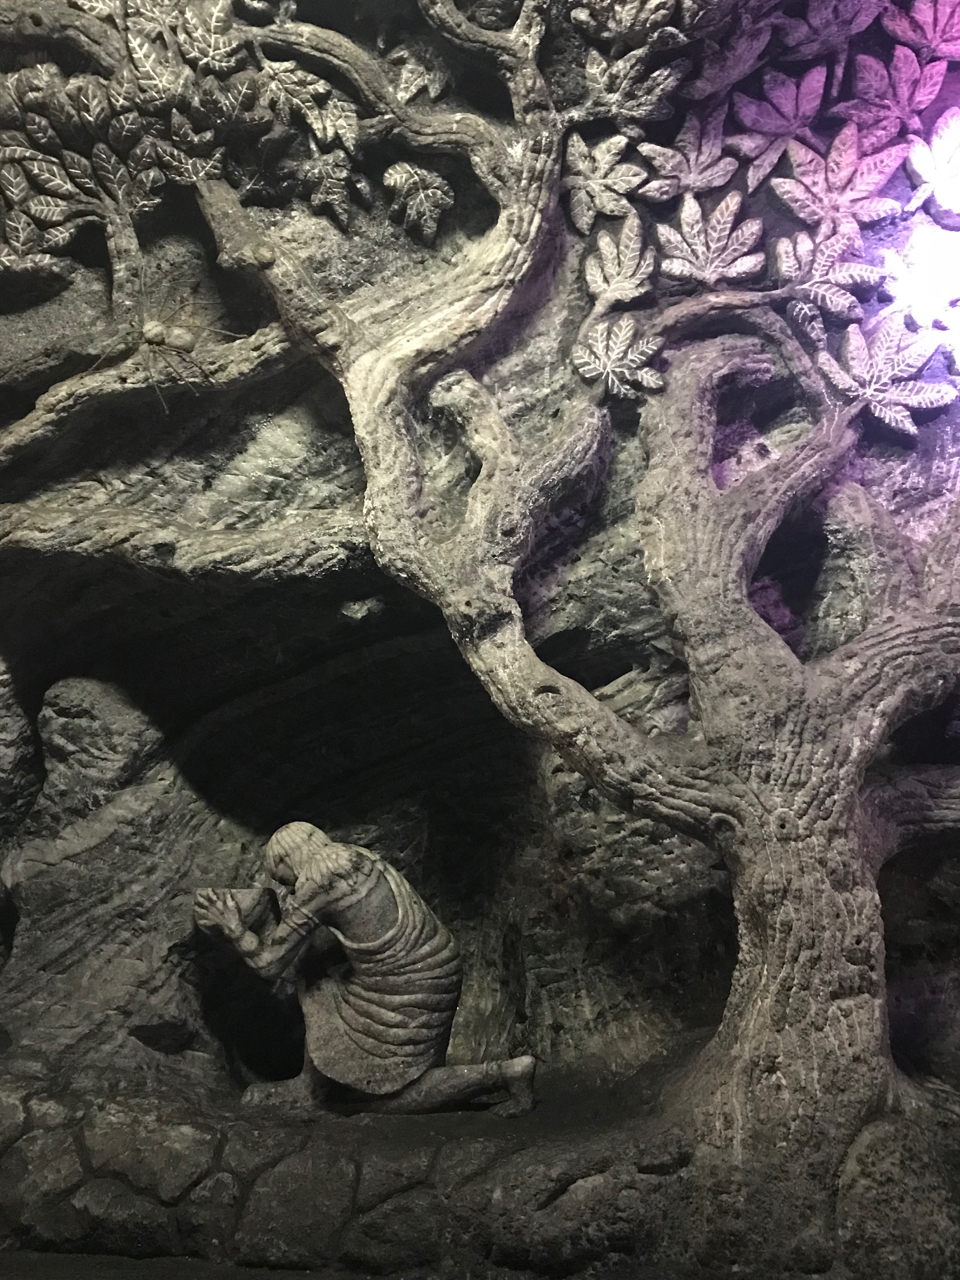 Tree and leaves carved into rock in Salt Cathedral Zipaquira